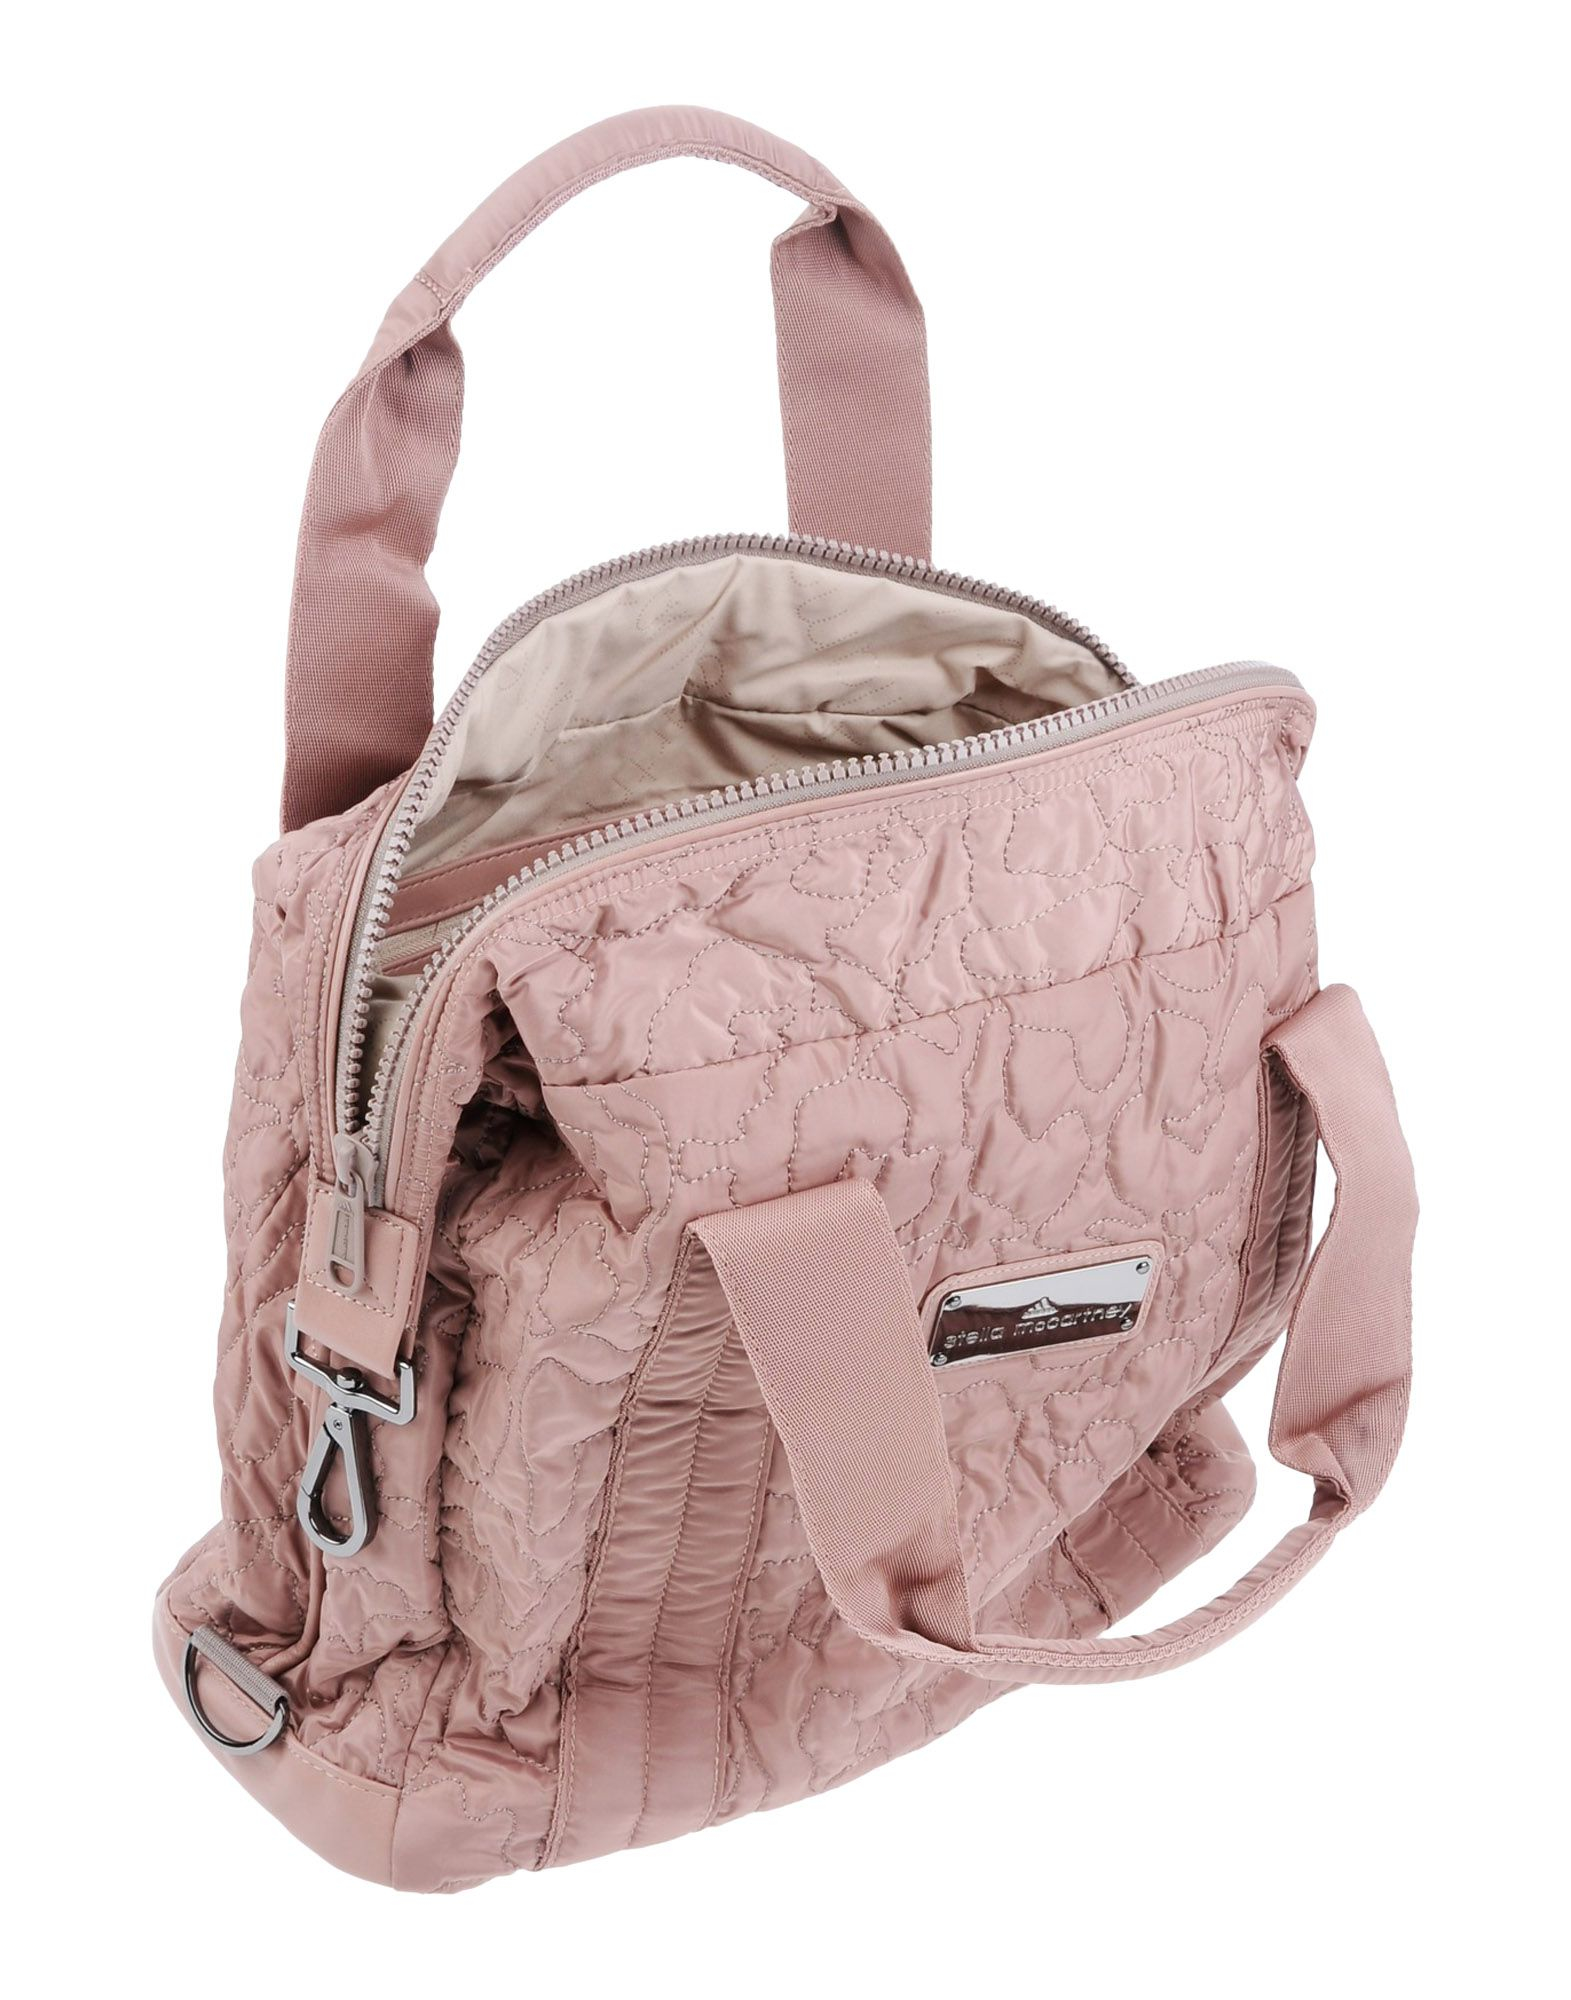 Adidas By Stella Mccartney Medium Quilted Gym Bag In Pink